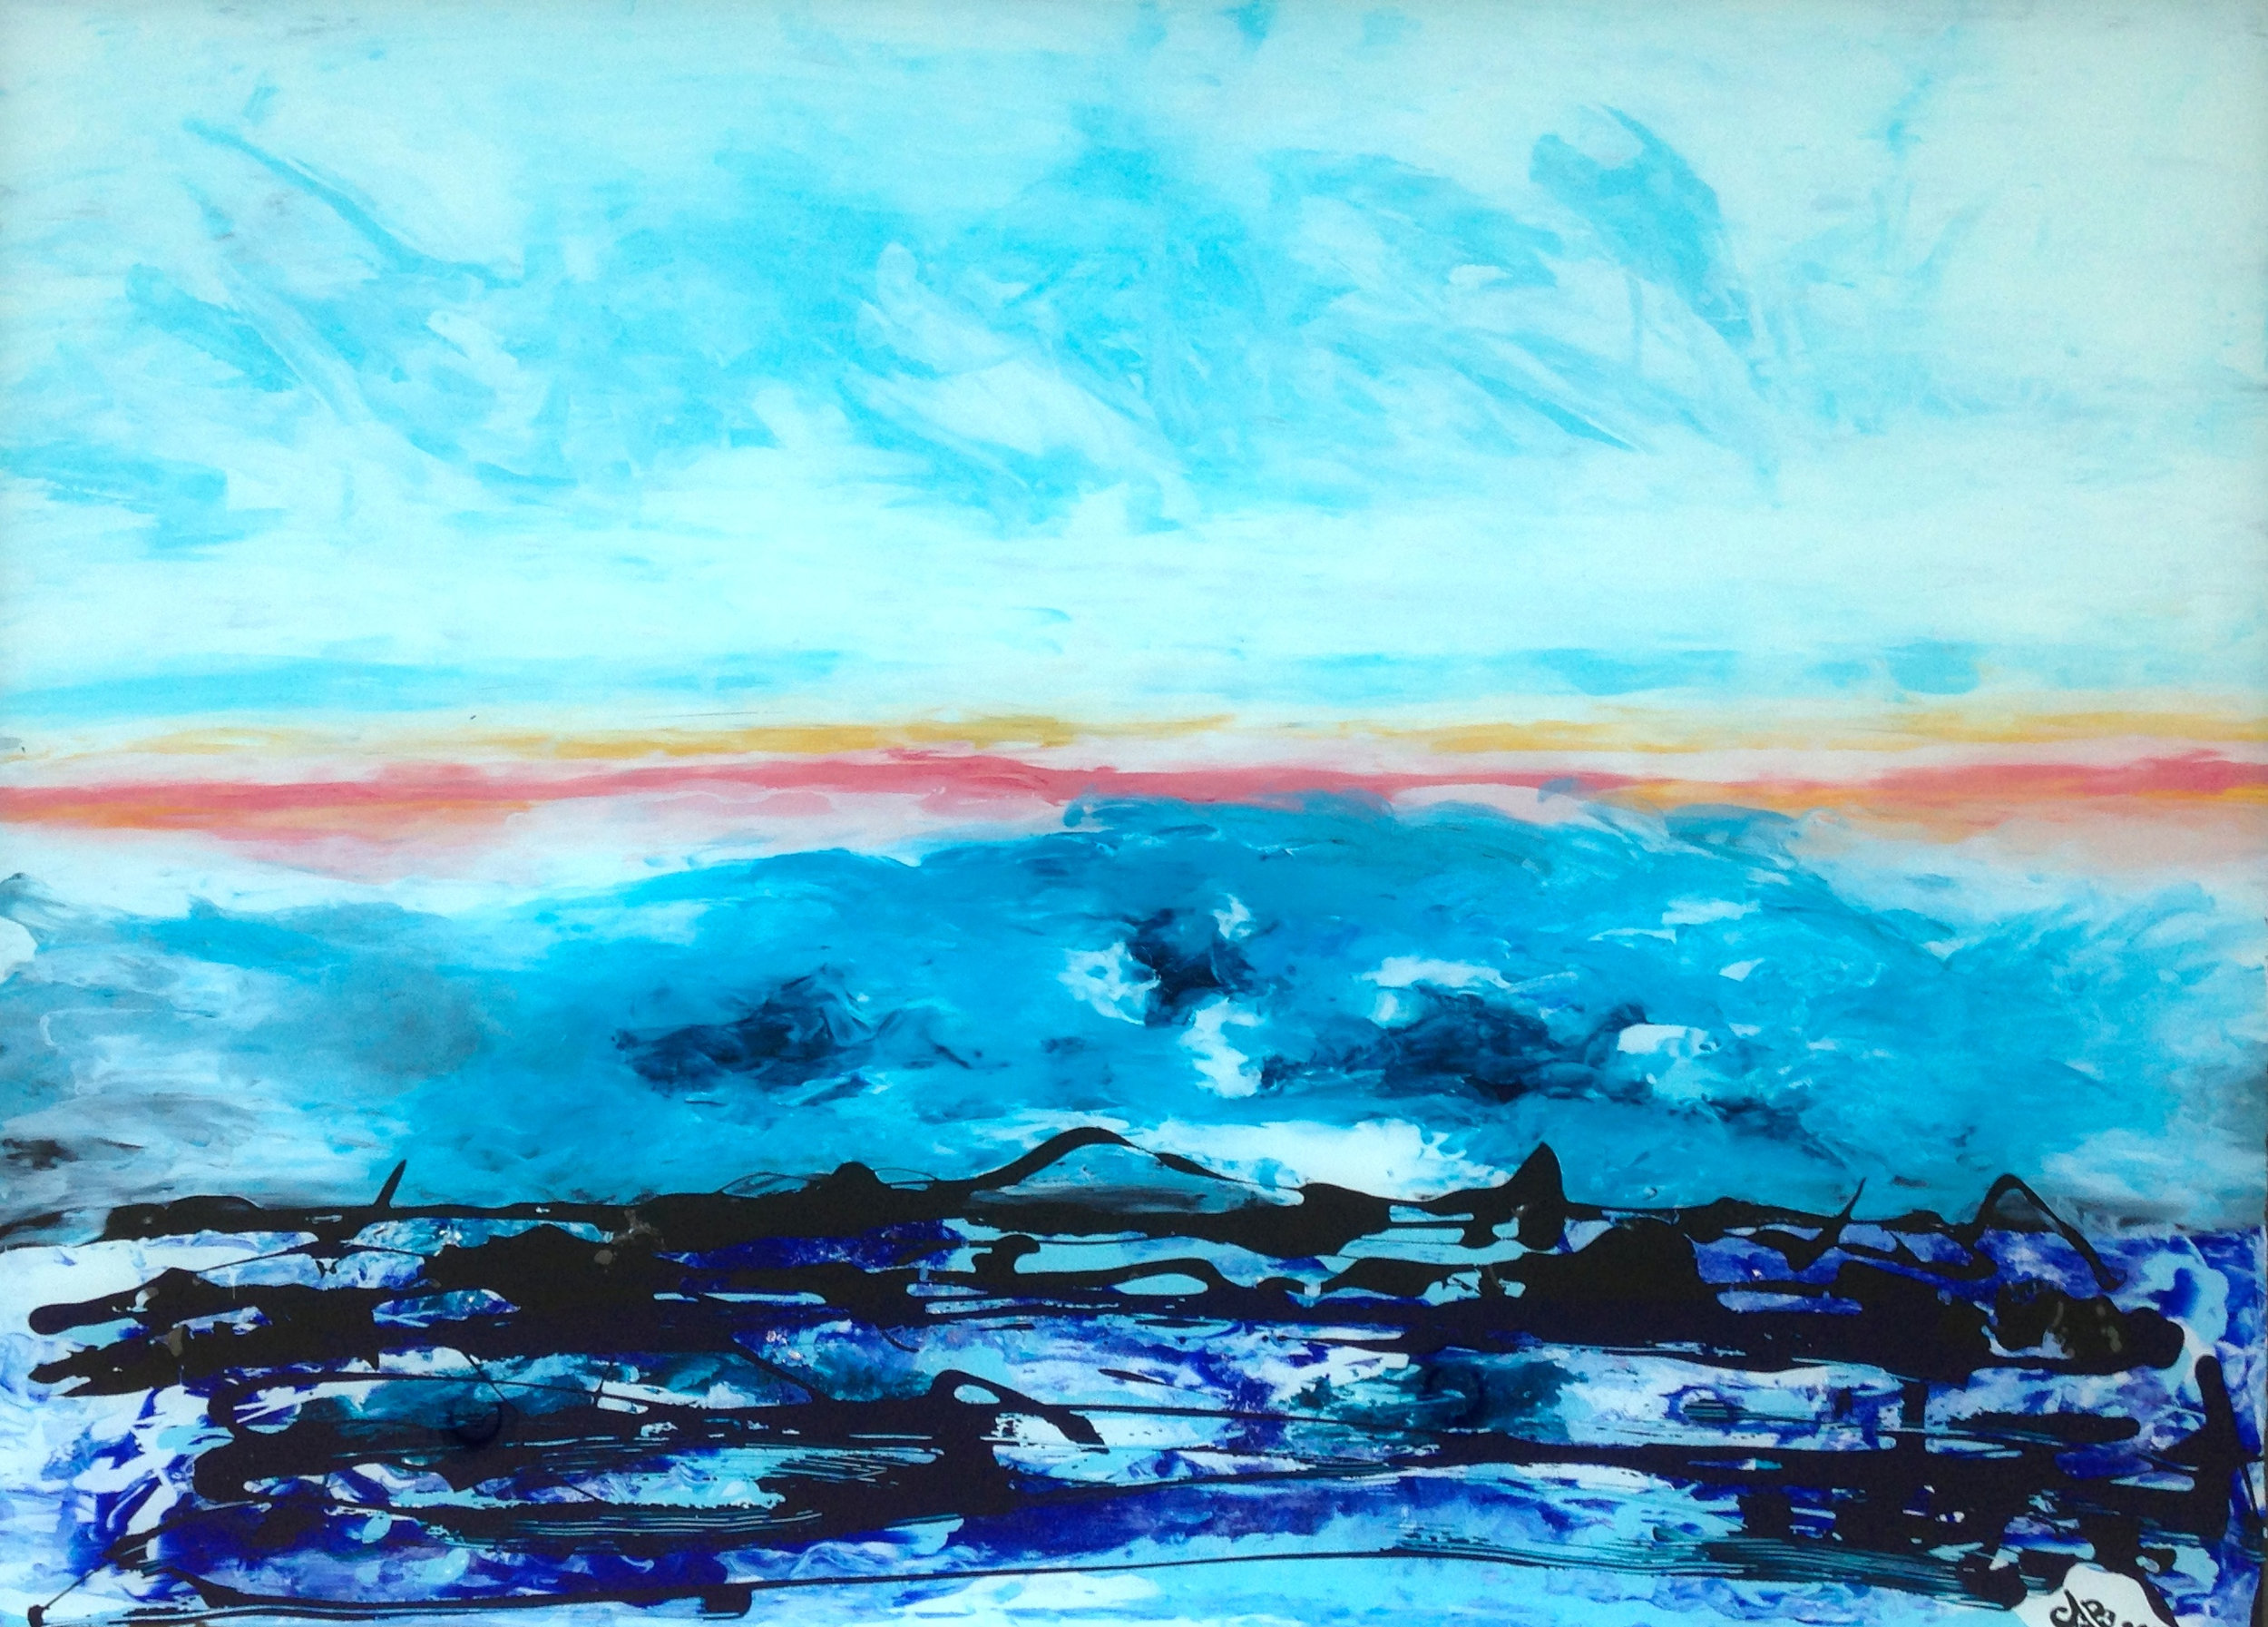 VICTORIA SUNRISE - Reverse painting on tempered glass 81 x 114 cm . 32 x 45 in